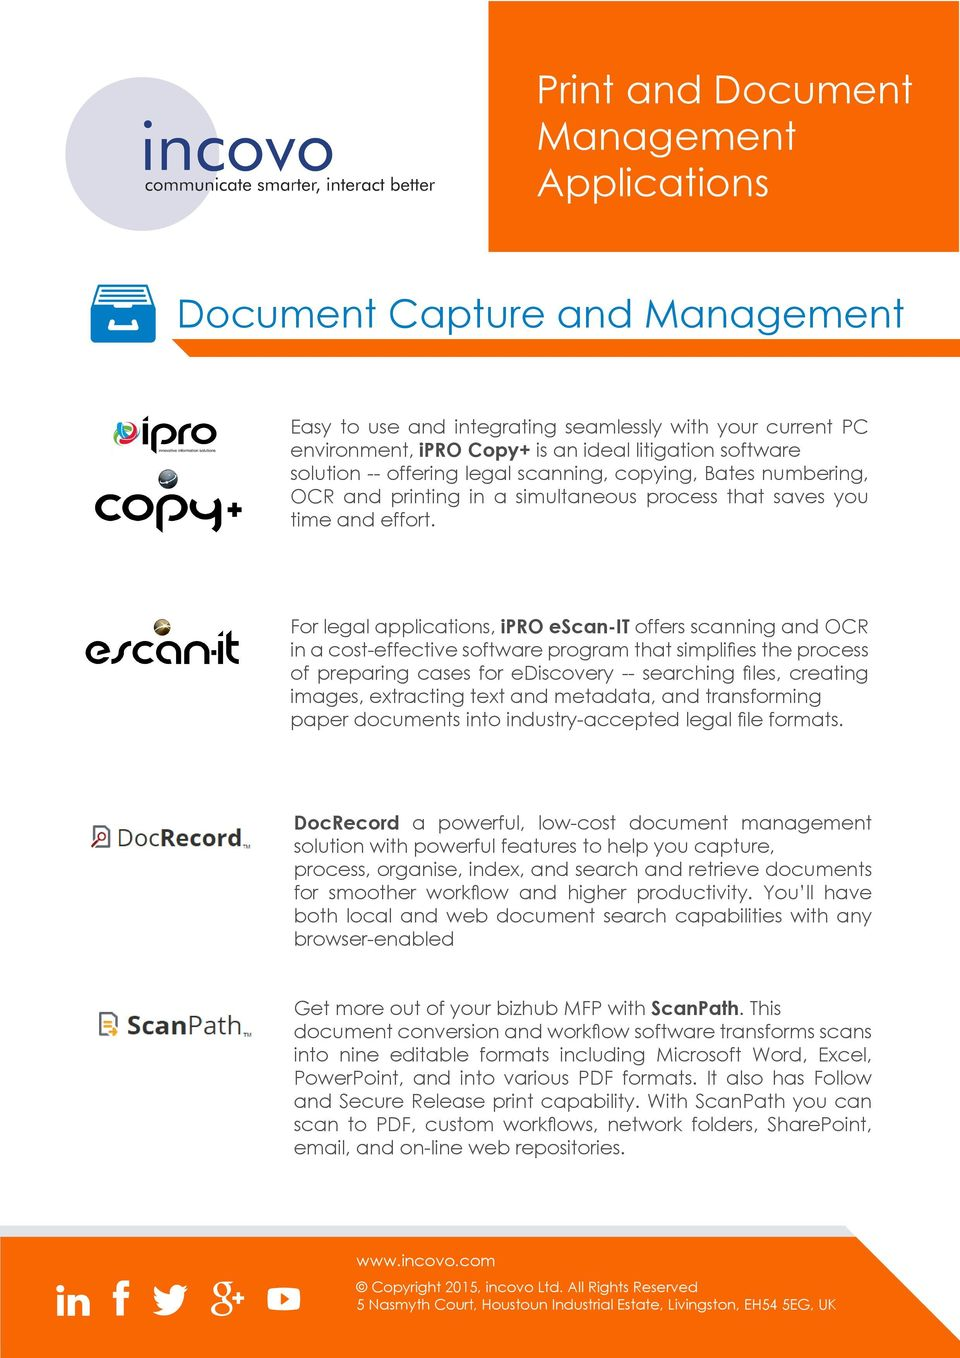 For legal applications, ipro escan-it offers scanning and OCR in a cost-effective software program that simplifies the process of preparing cases for ediscovery -- searching files, creating images,